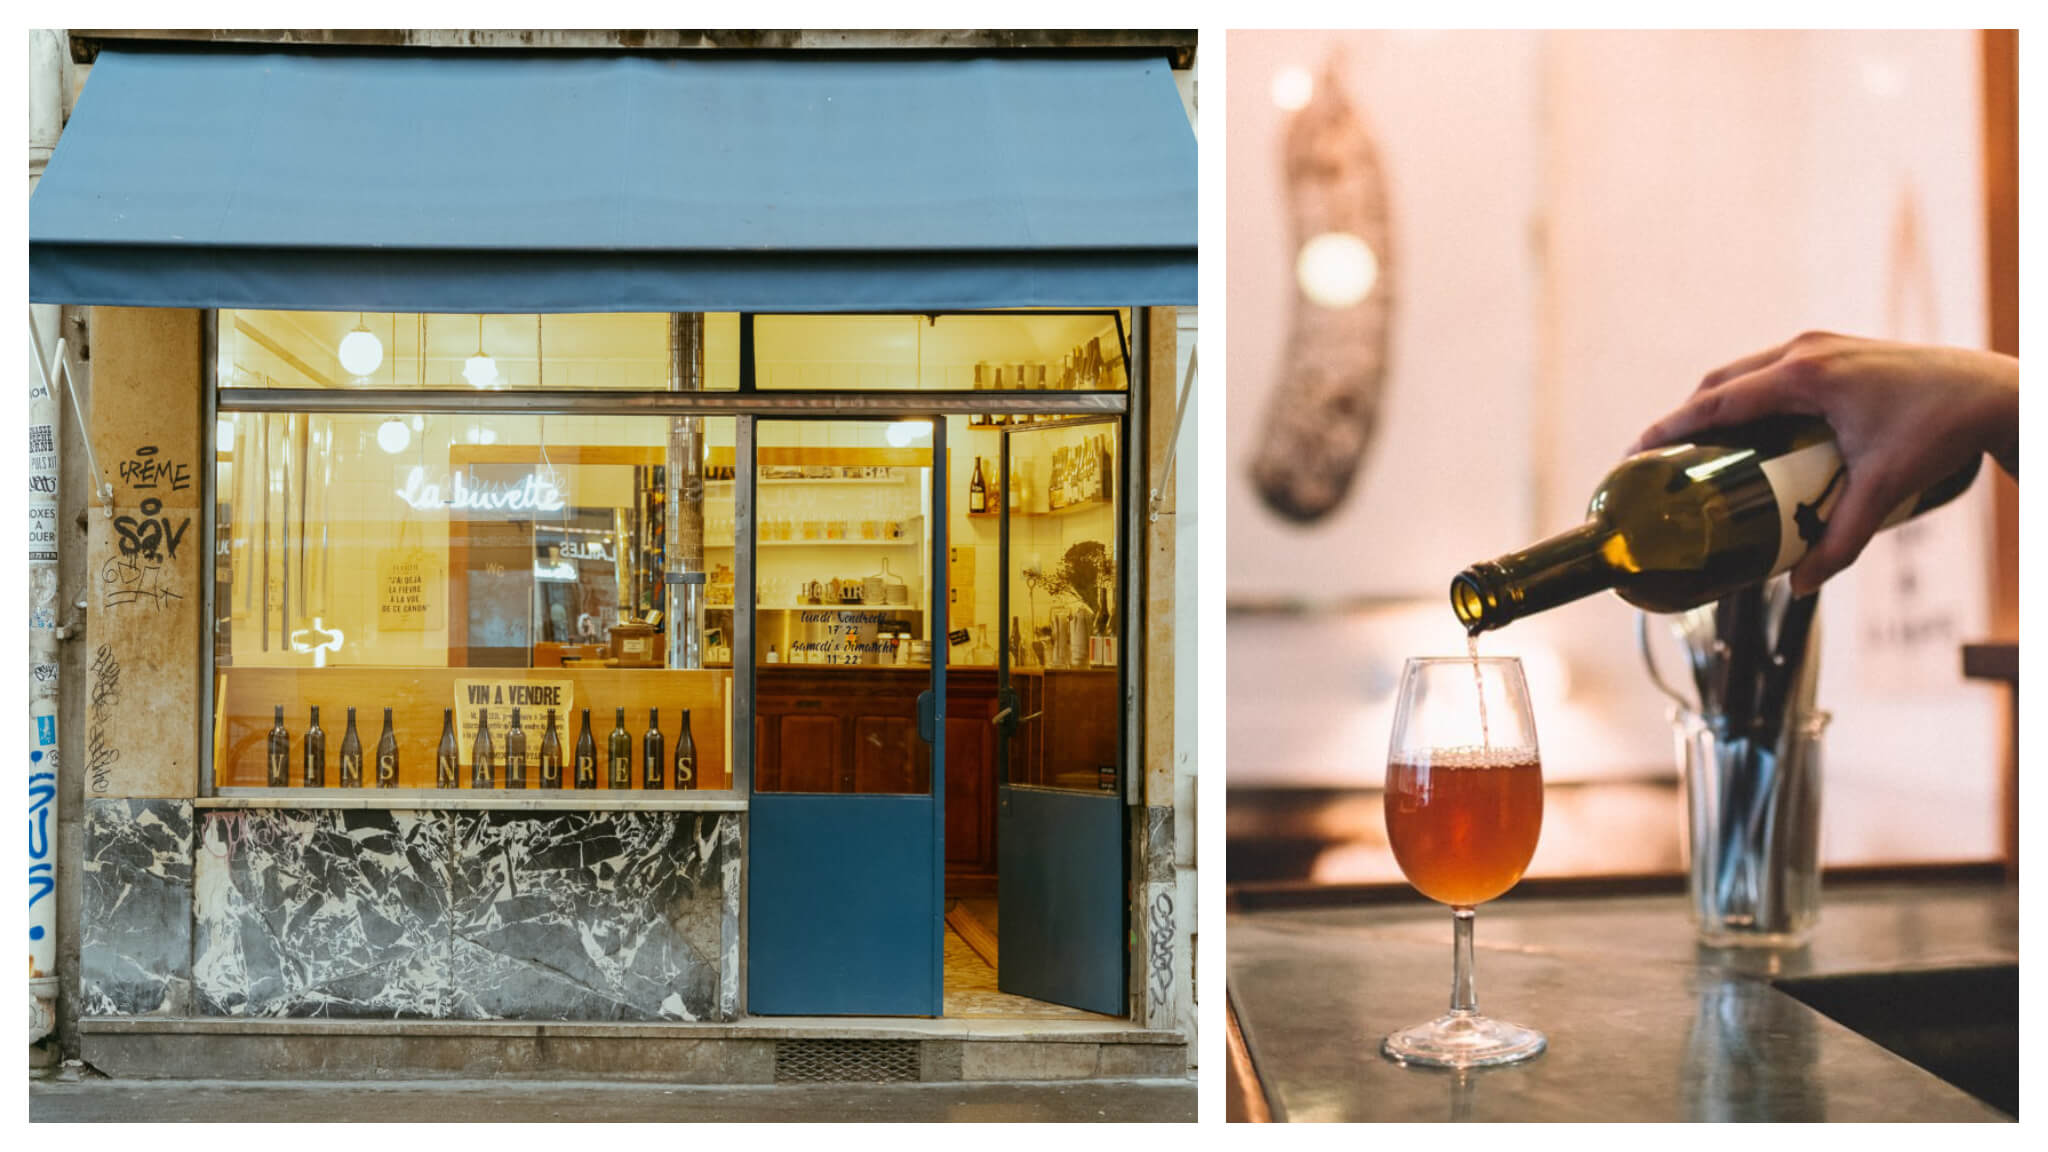 Left: The exterior of La Buvette. Right: a person pours an unidentifed brownish-orange liquid from what appears to be a wine glass.